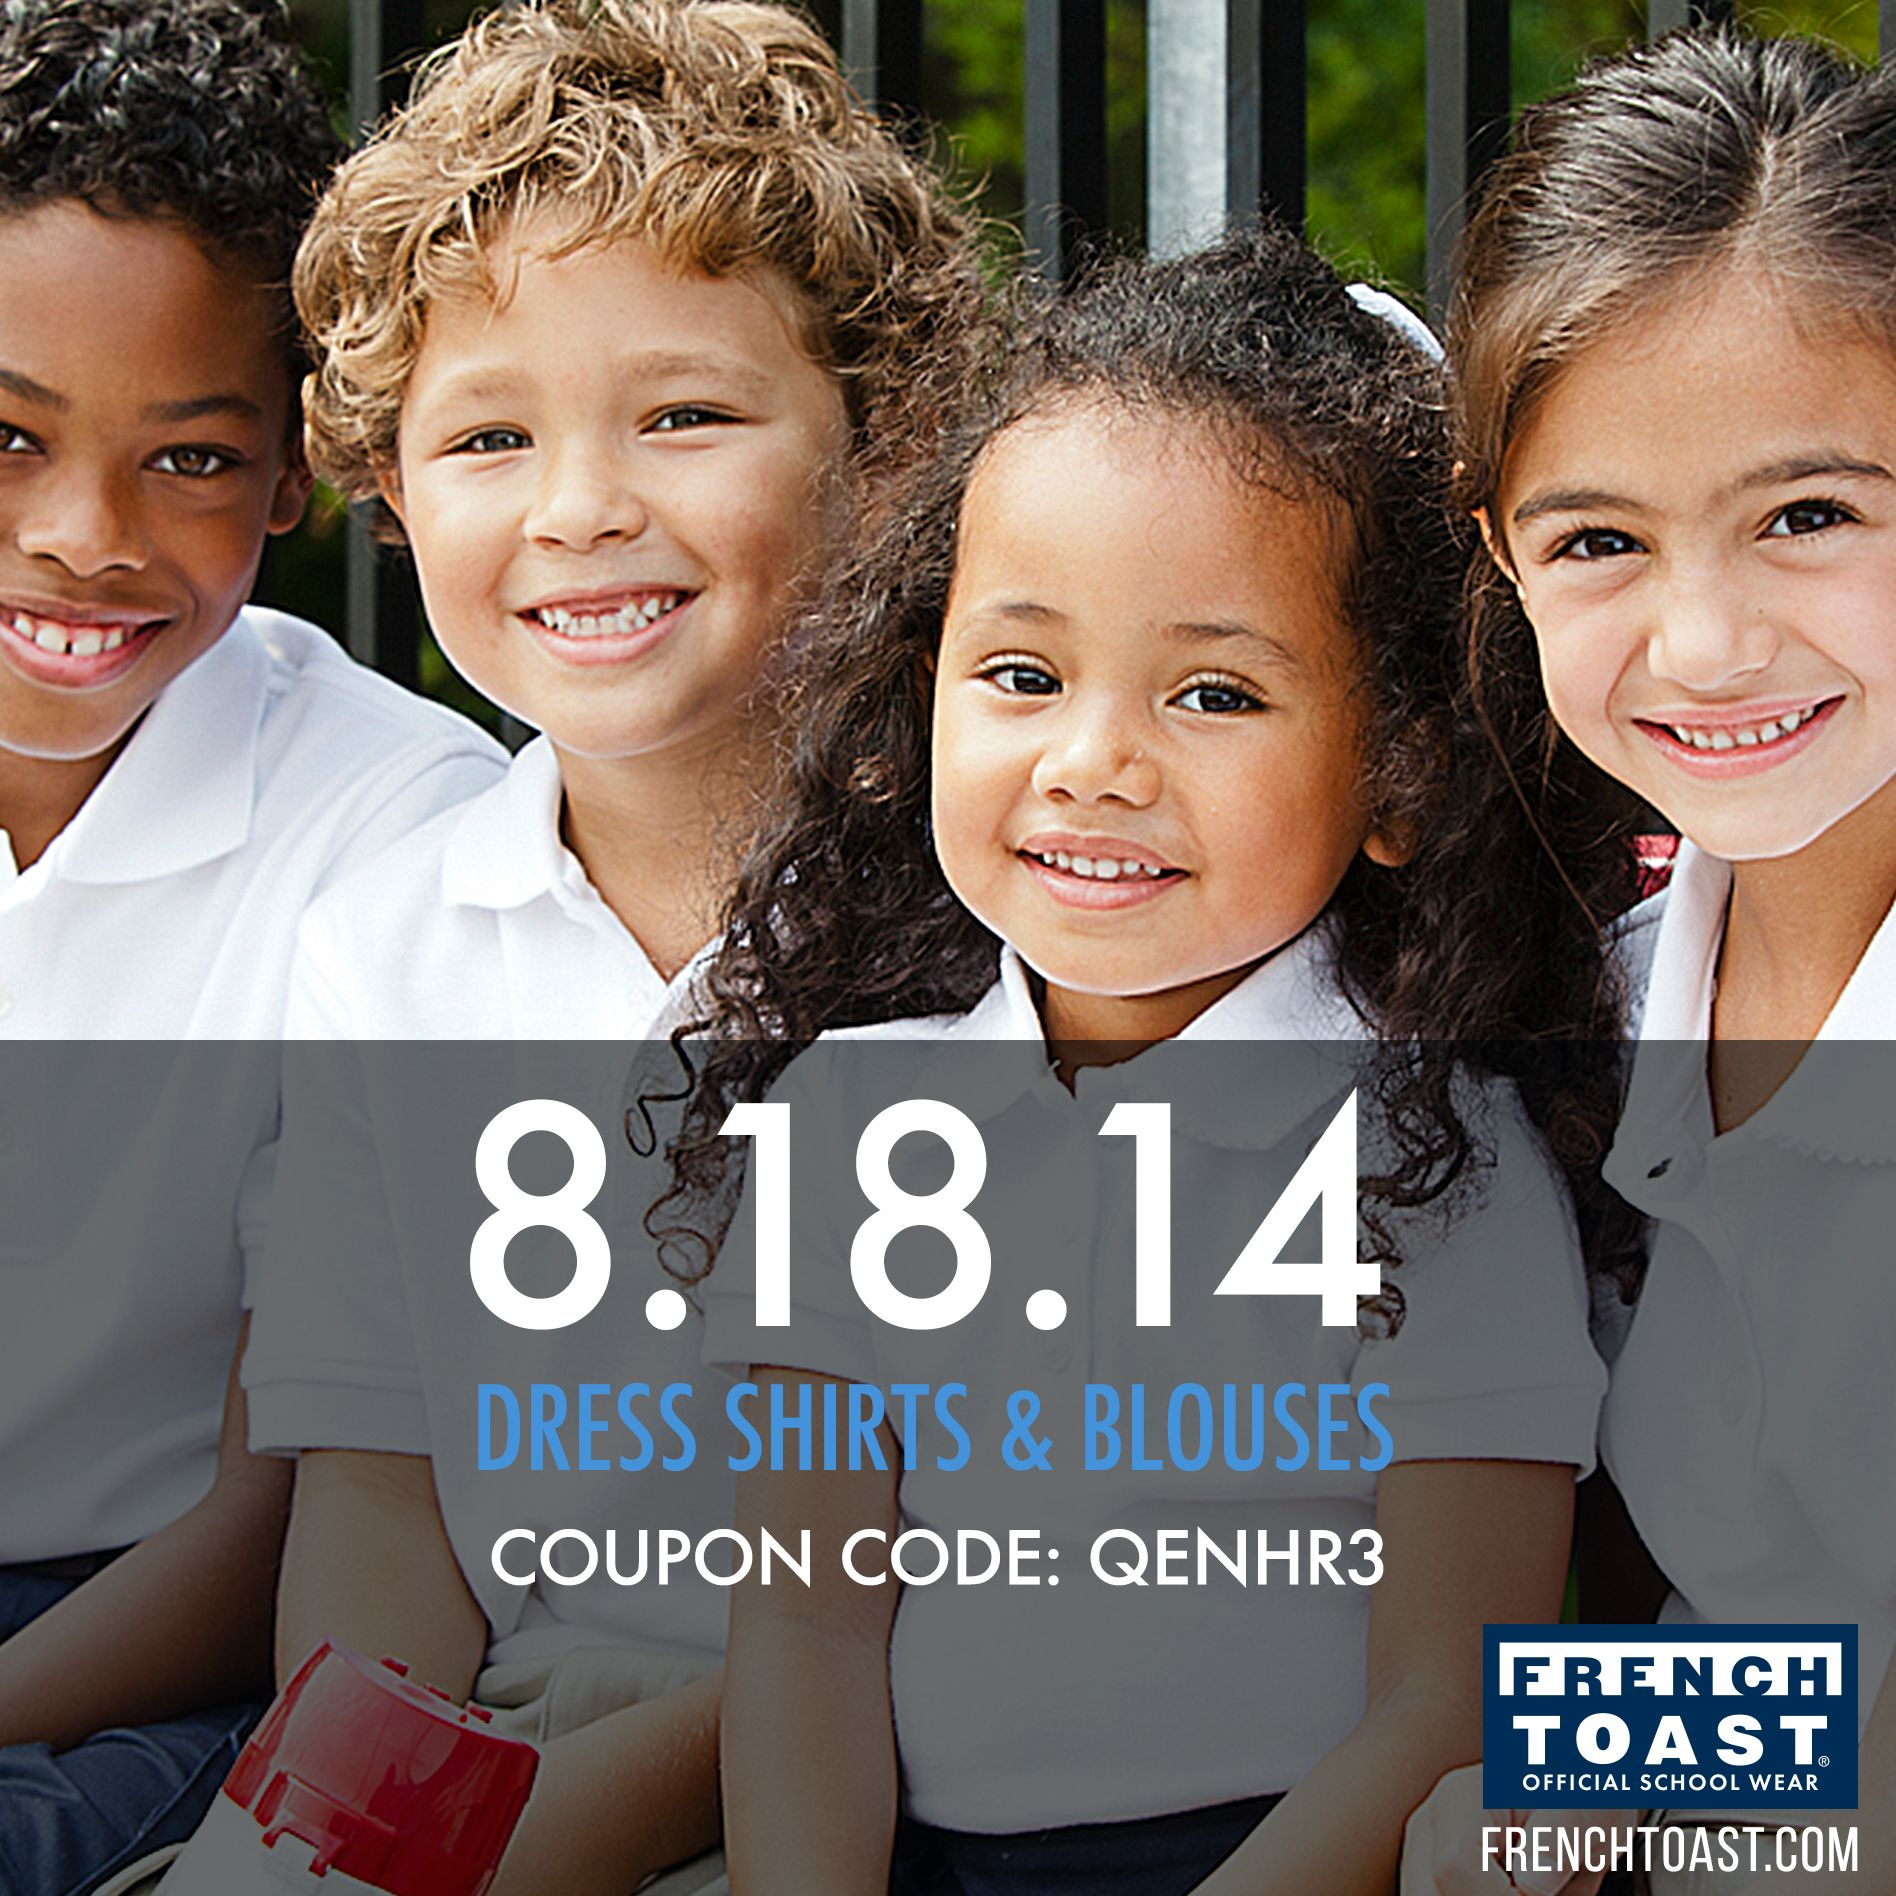 Send your kids back to school in style! Save 15% when you visit www.frenchtoast.com & use the code QENHR3.